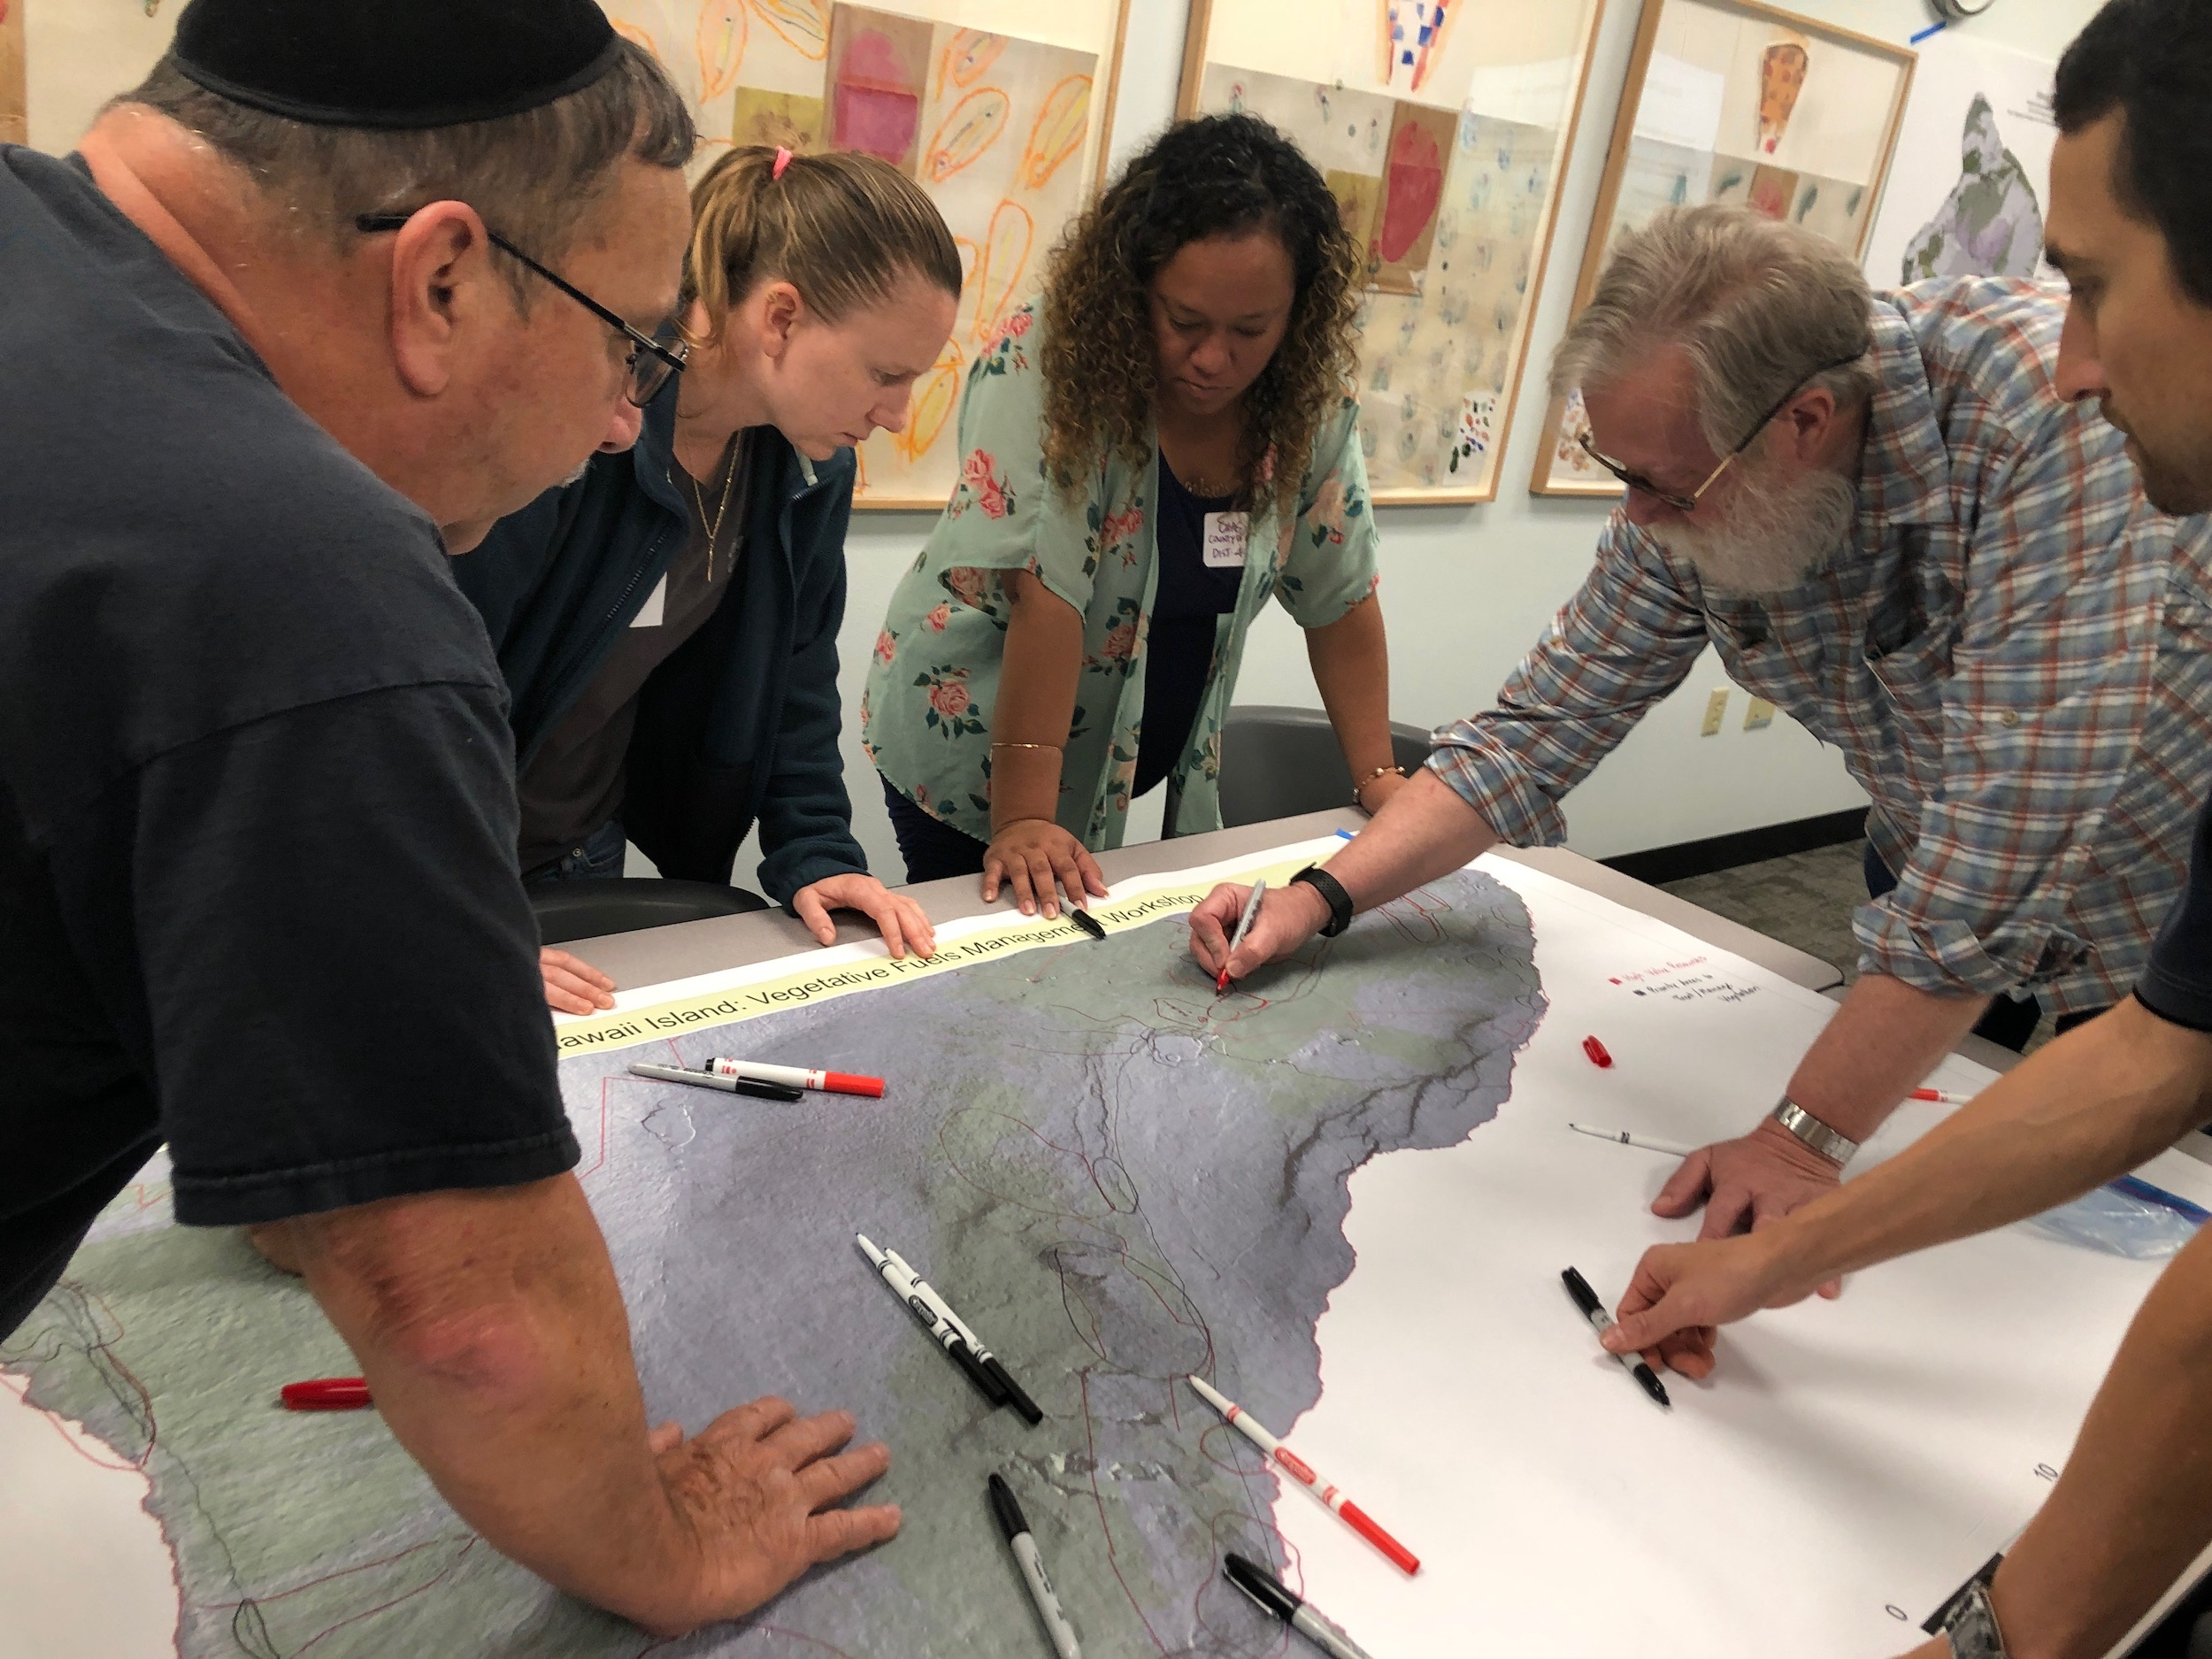 Hawaii Island Hilo Vegetative Fuels Management Collaborative Action Planning Workshop_2_22_2019_18.jpg